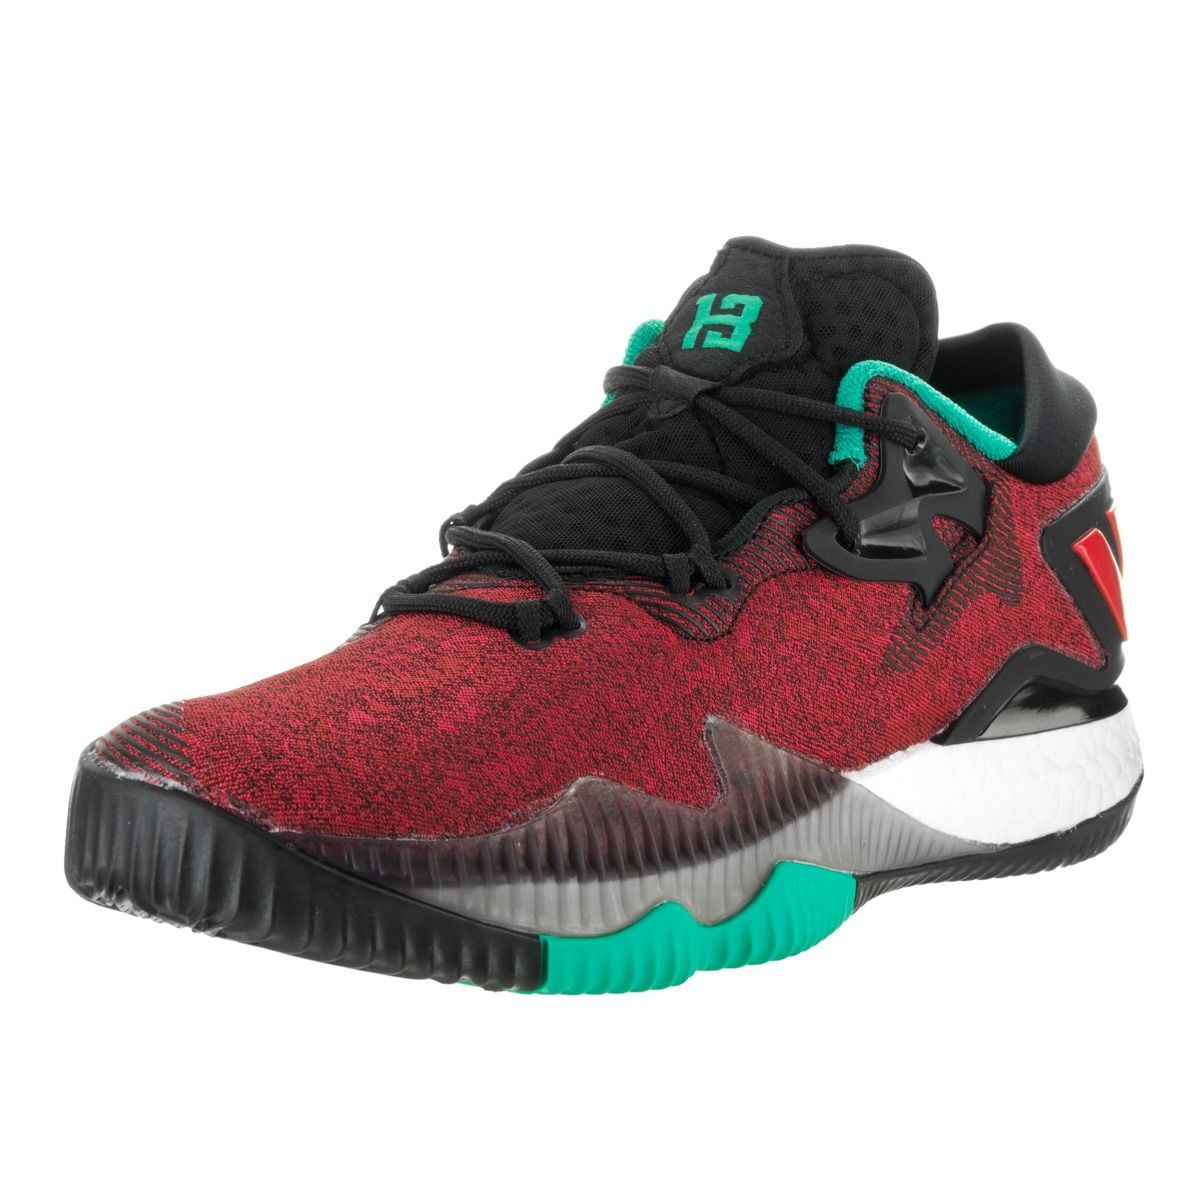 Adidas Men's 2016 Crazylight Boost Low-top Basketball Shoes